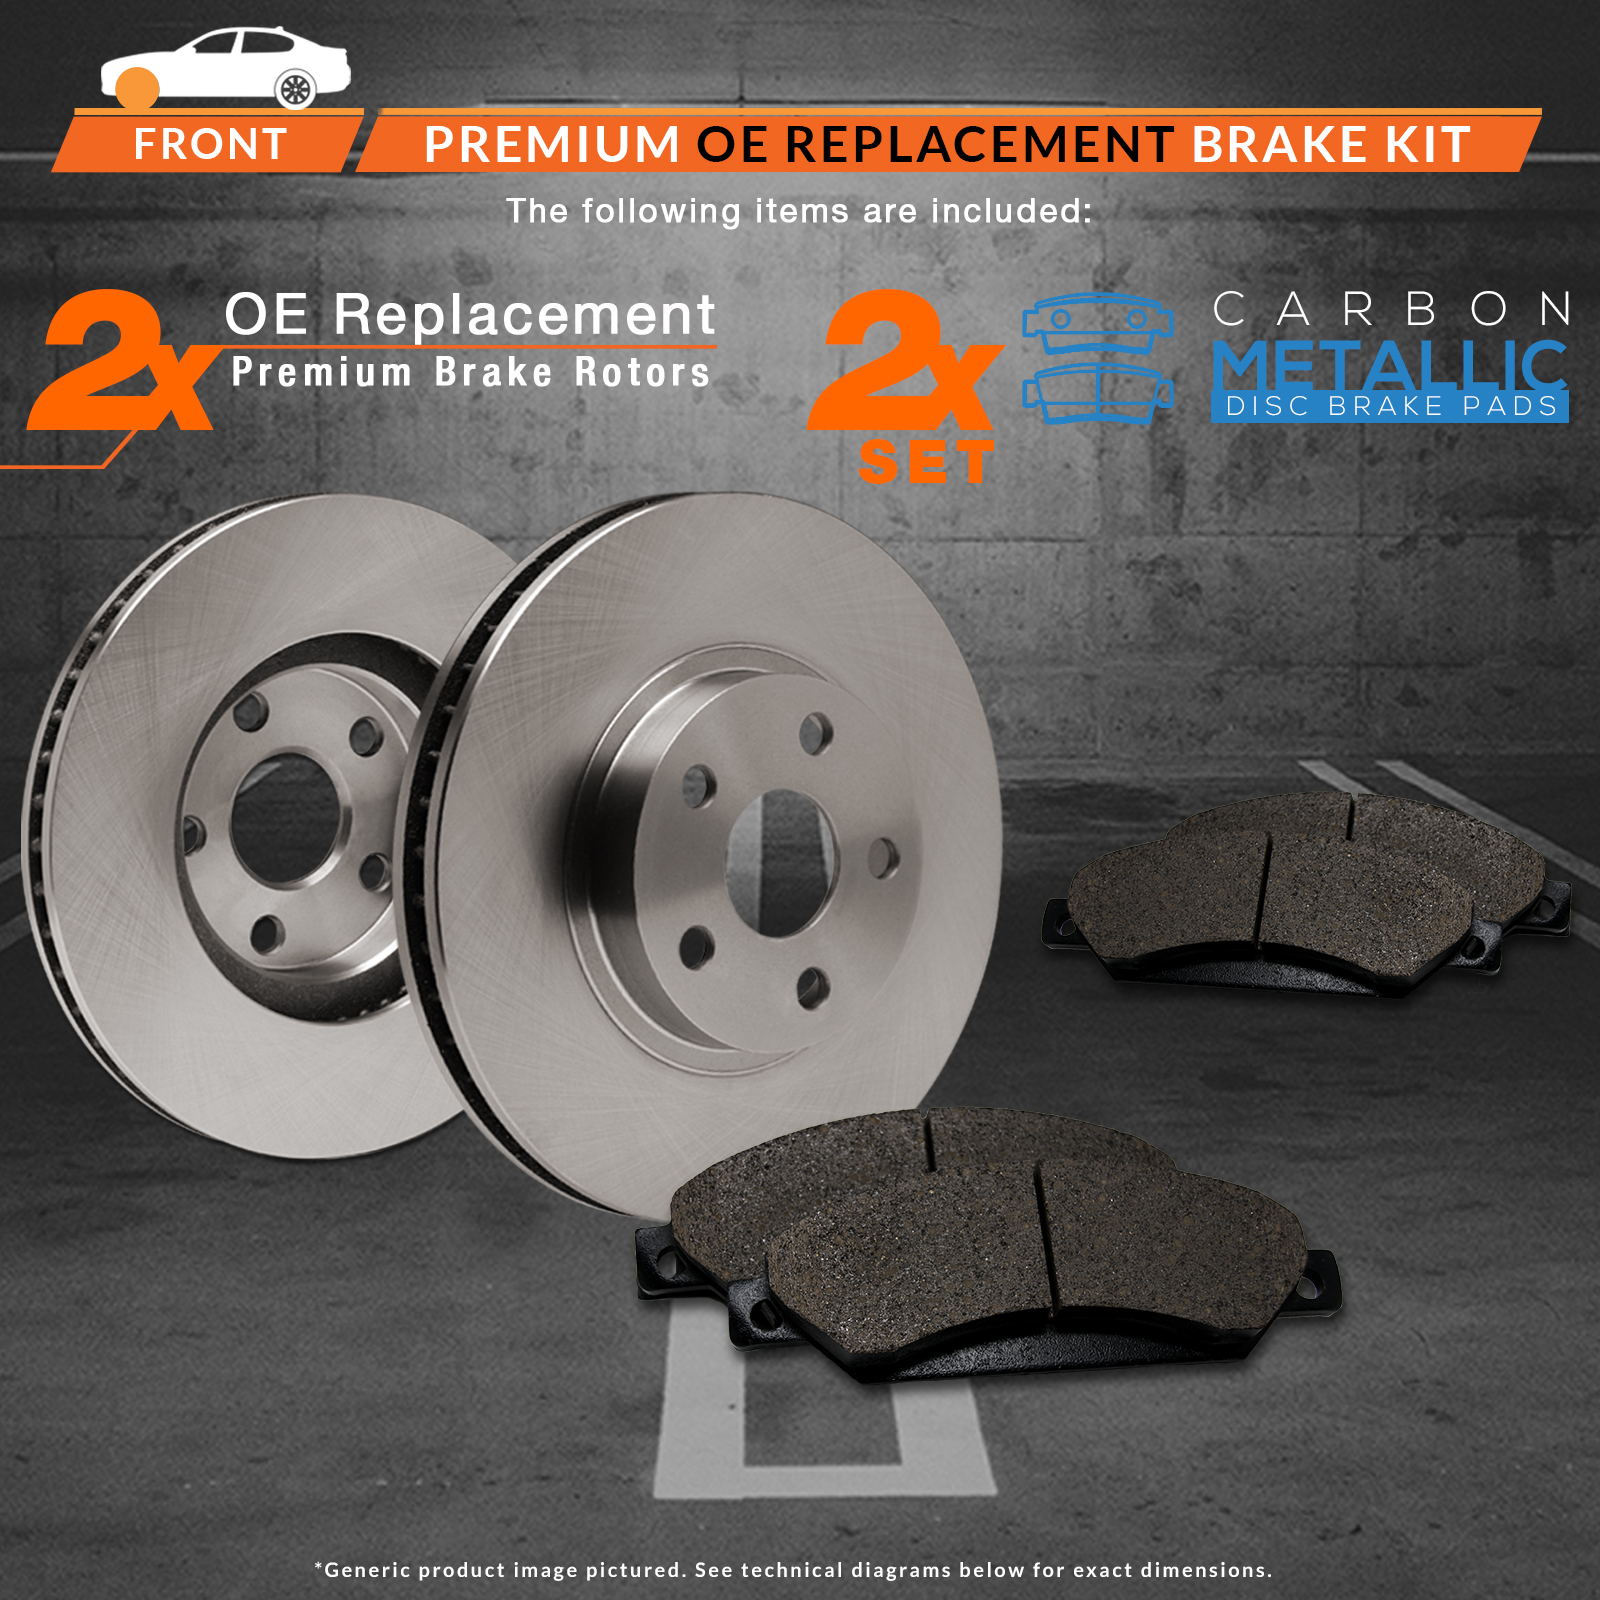 2003 2004 2005 2006 Fit Toyota Corolla OE Replacement Rotors w//Metallic Pads F